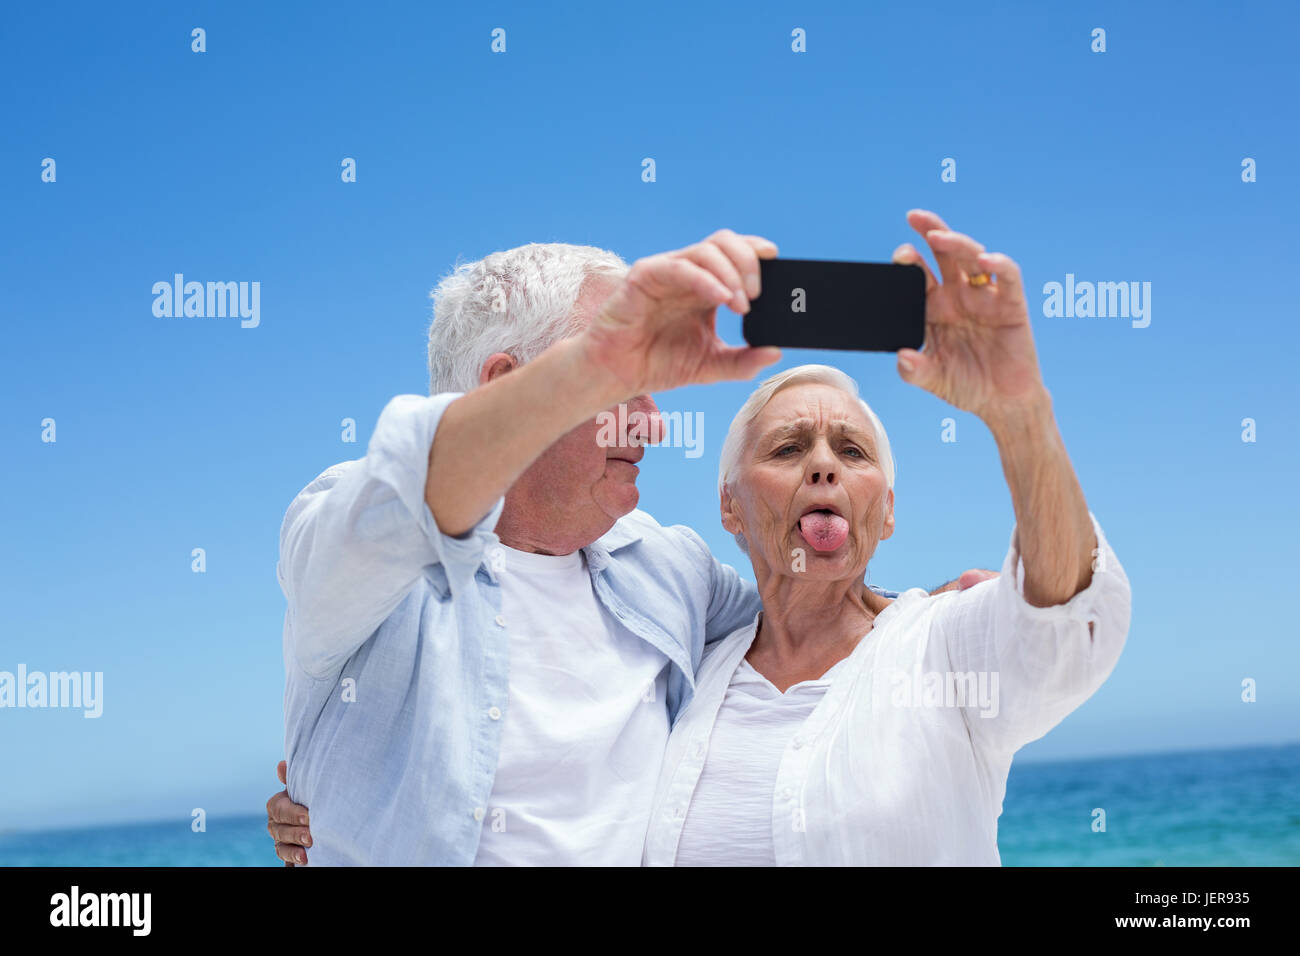 Senior couple taking a selfie and grimacing - Stock Image